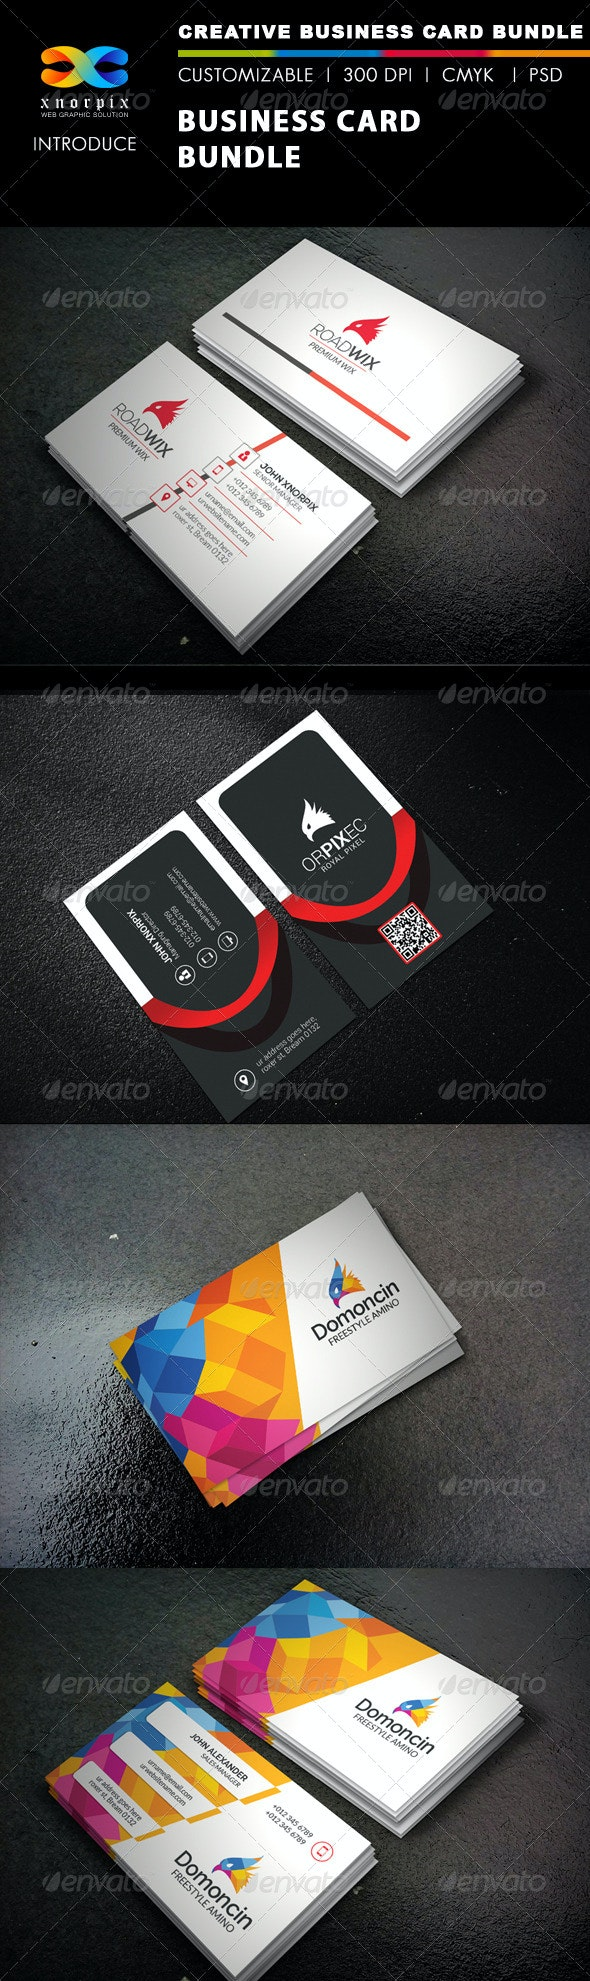 Business Card Bundle 3 in 1-Vol 40 - Corporate Business Cards